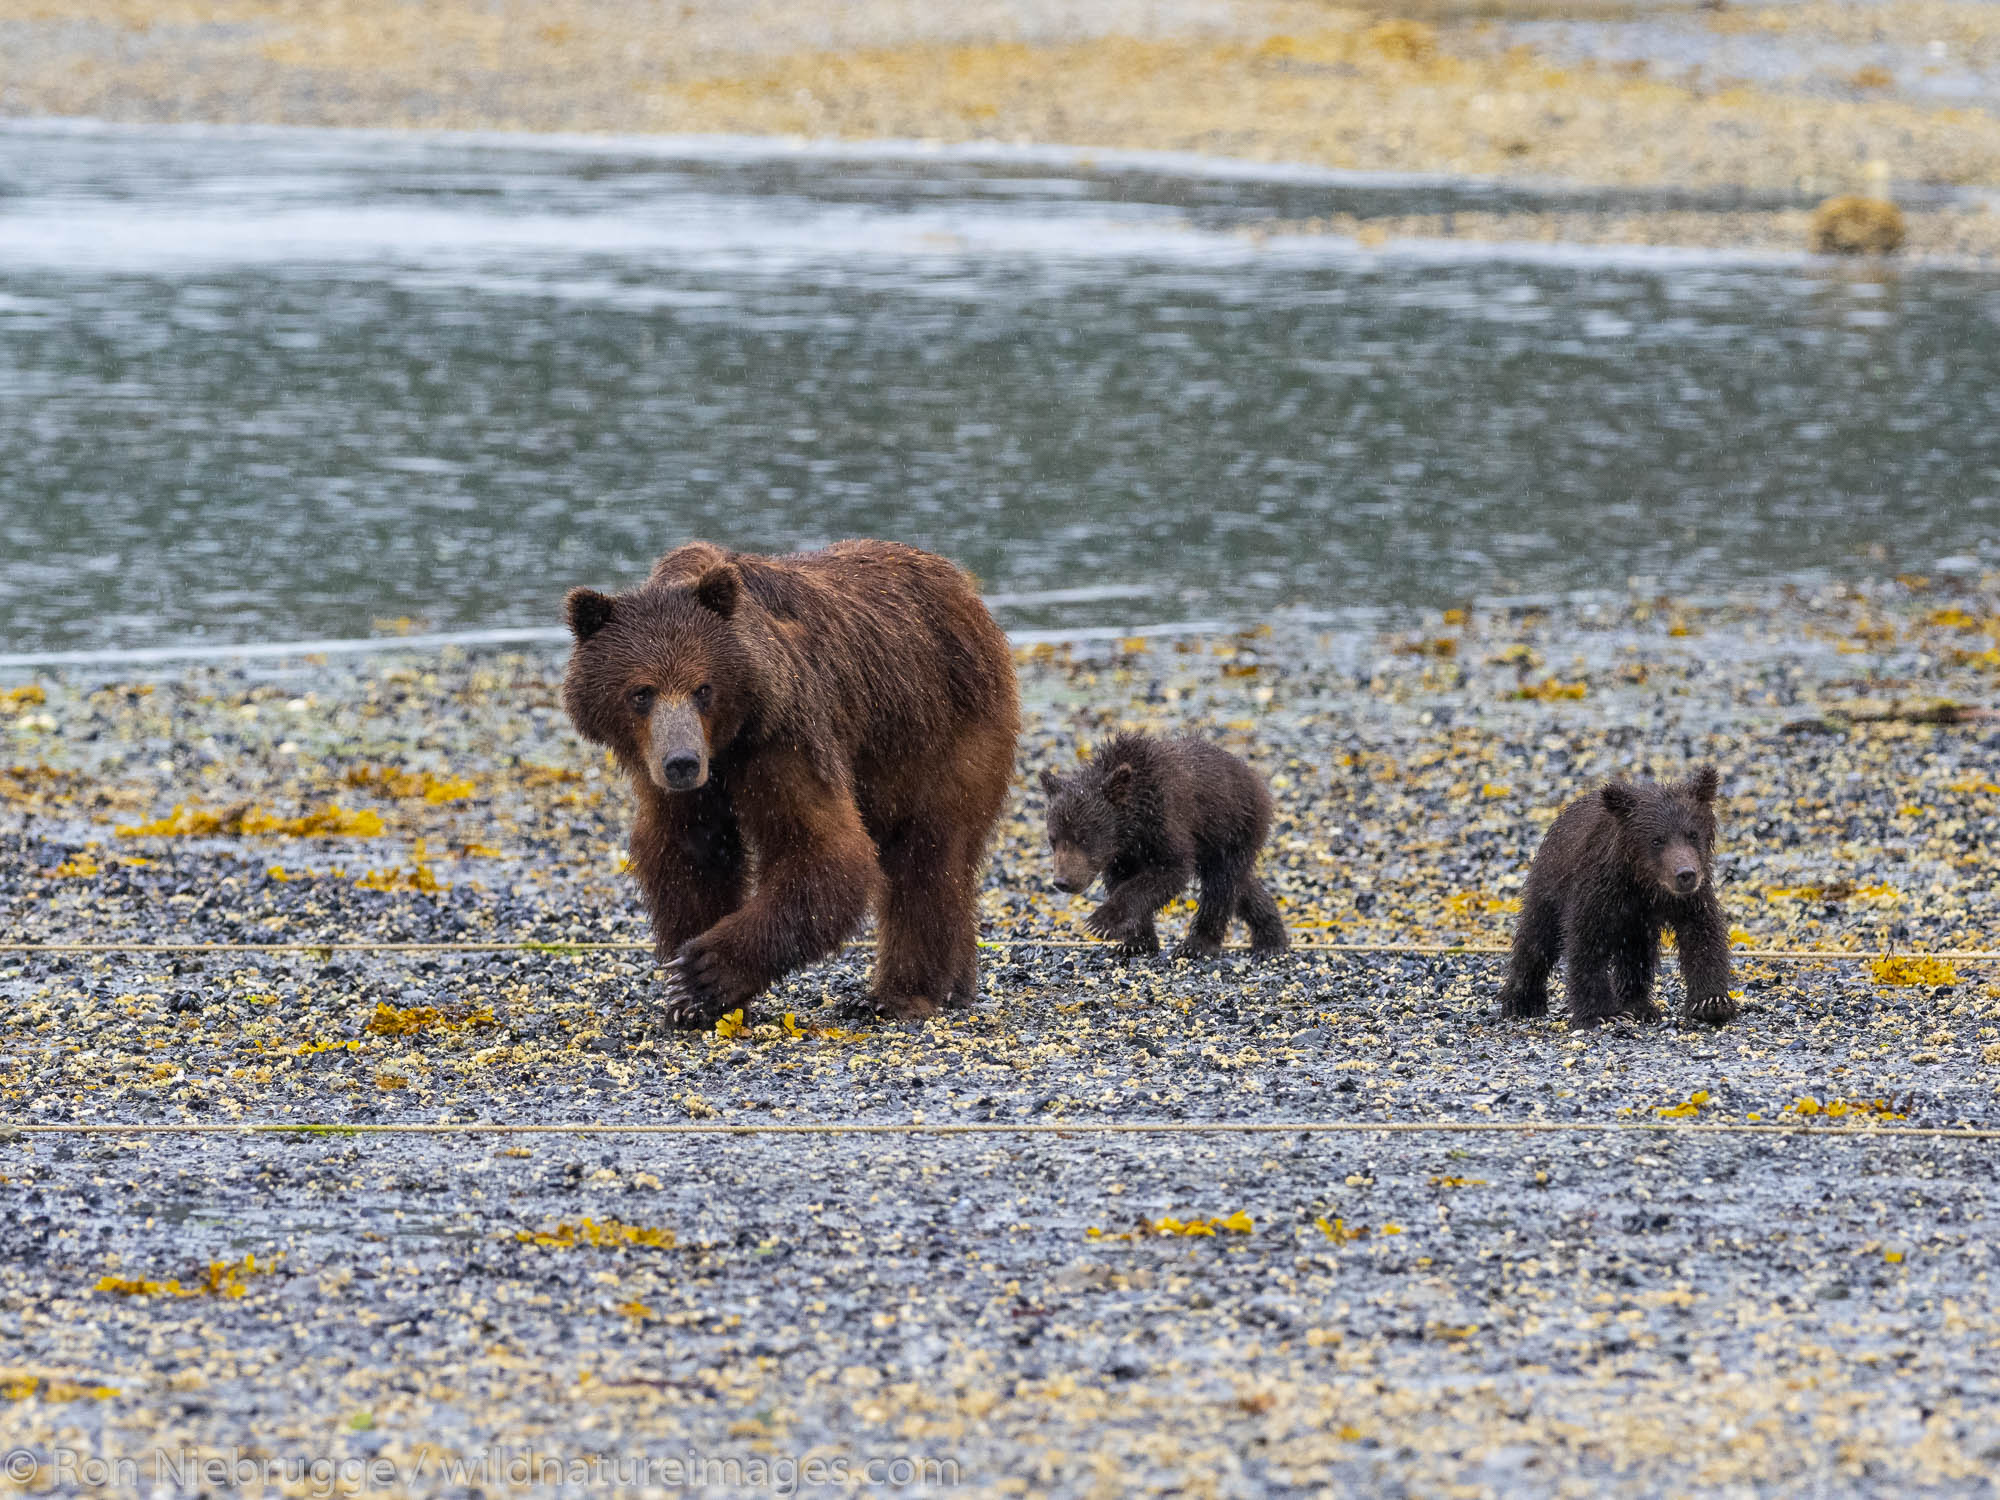 Brown bear sow with spring cubs, Pack Creek Bear Viewing Area on Admiralty Island, Tongass National Forest, Alaska.